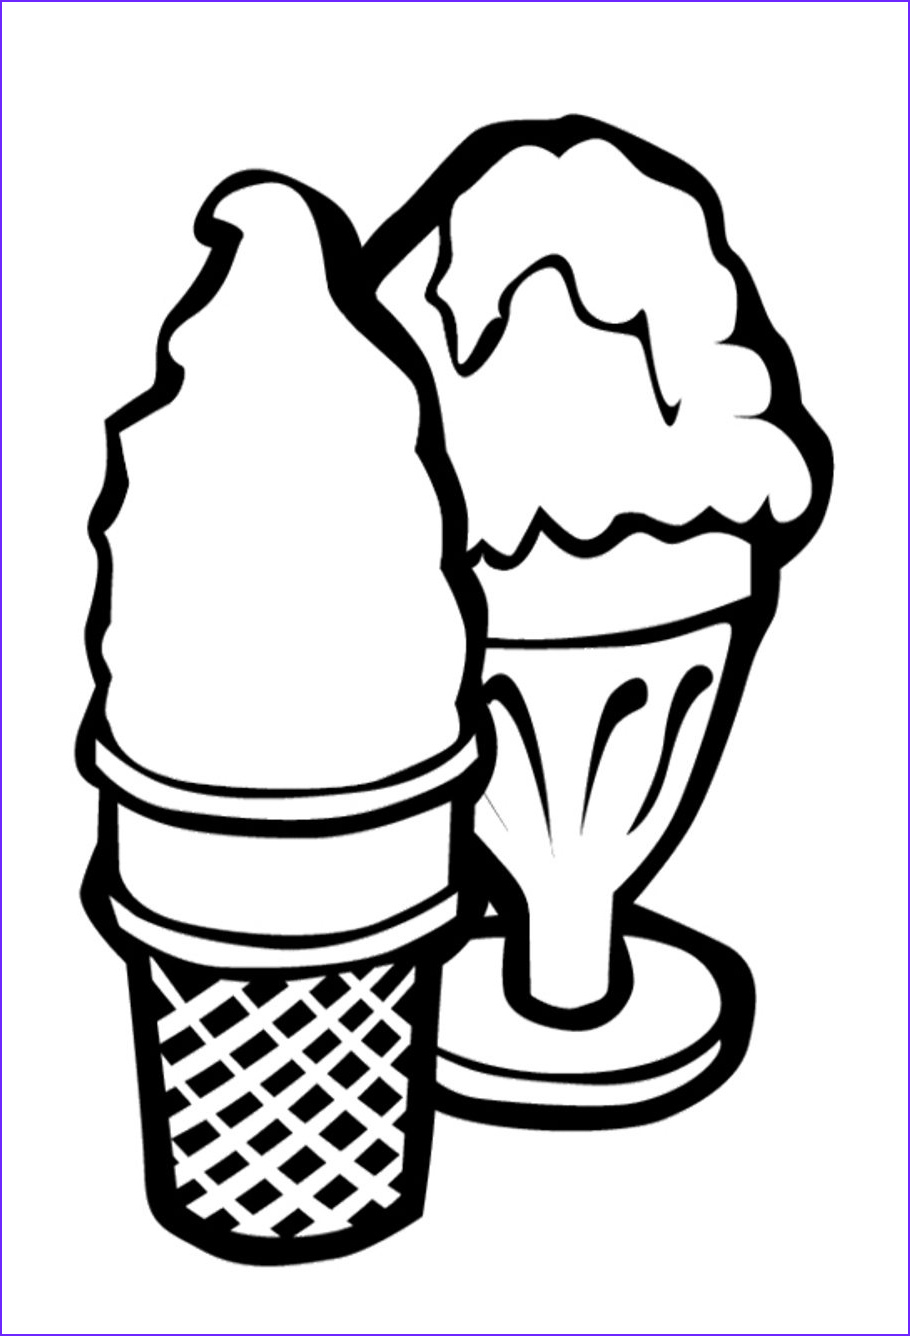 Icecream Cone Coloring Pages Beautiful Stock Free Printable Ice Cream Coloring Pages for Kids